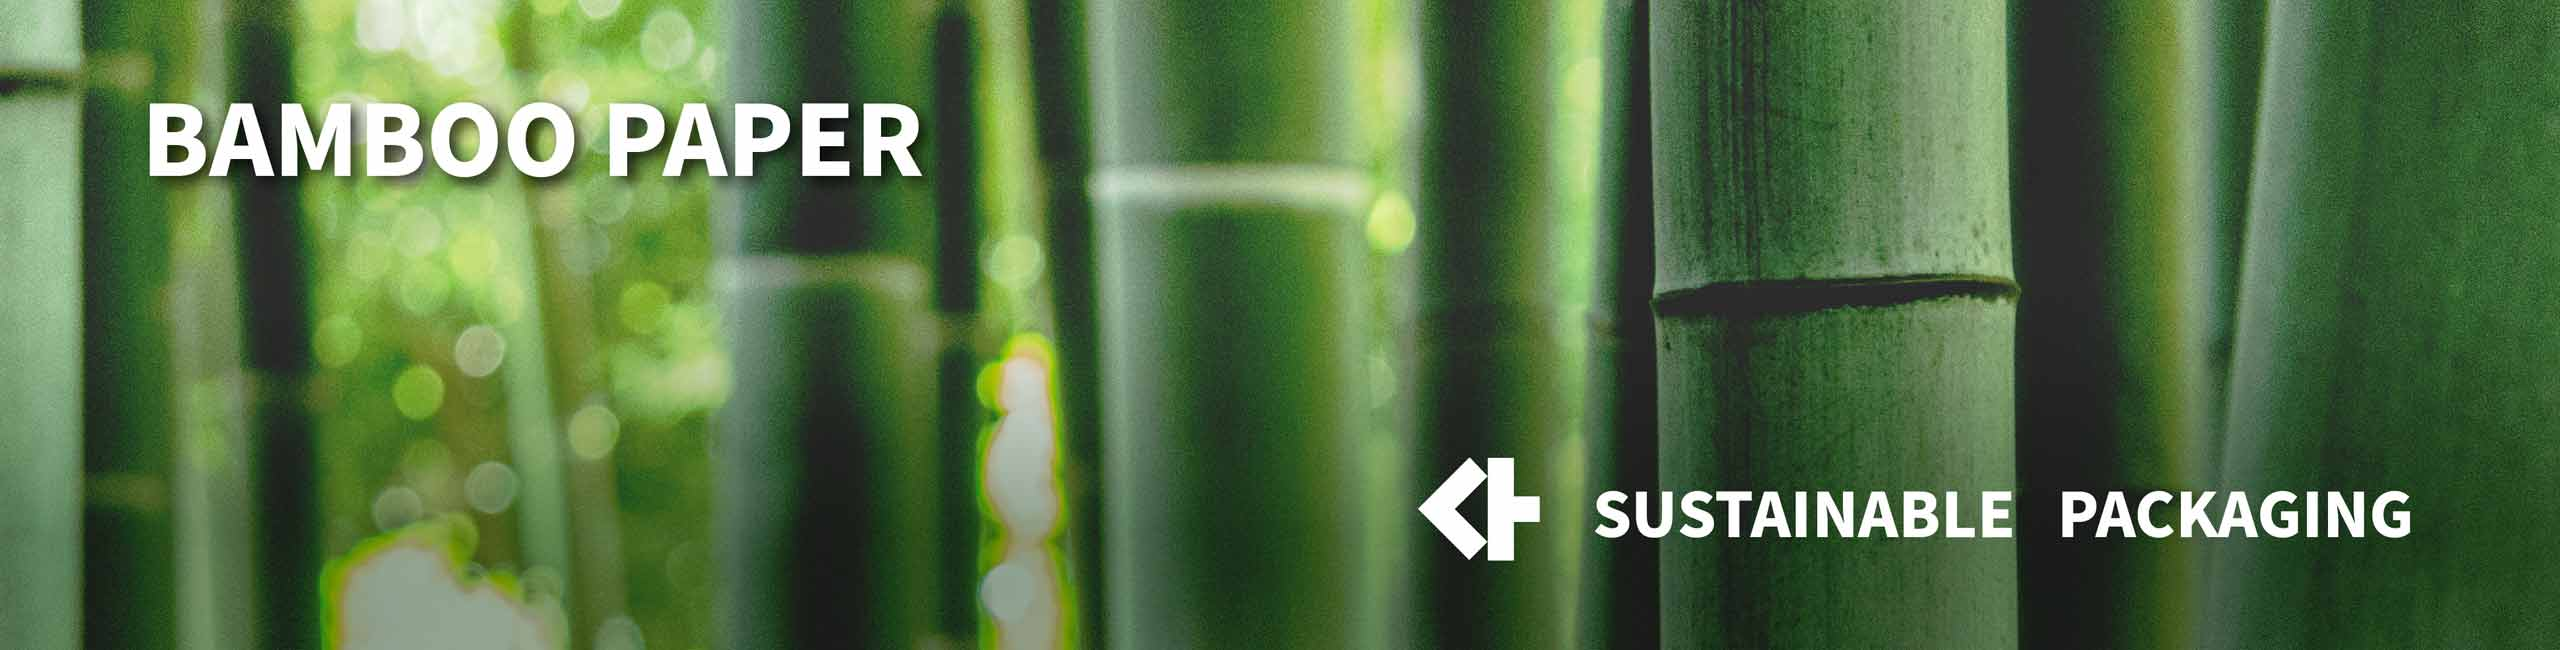 Why is Bamboo Sustainable? The Uses and Benefits of Bamboo Paper